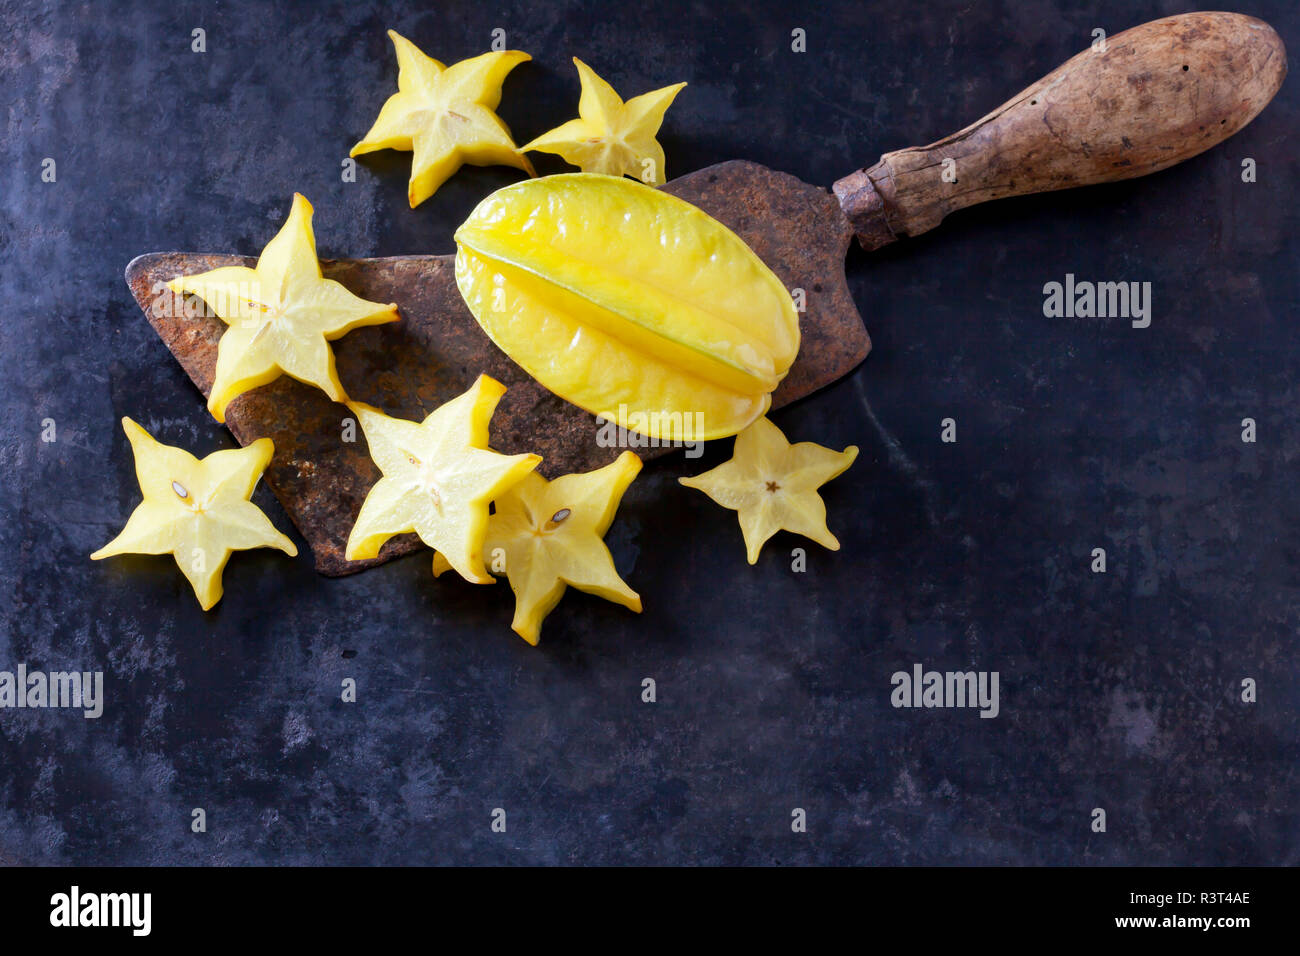 Sliced starfruit on an old cleaver - Stock Image